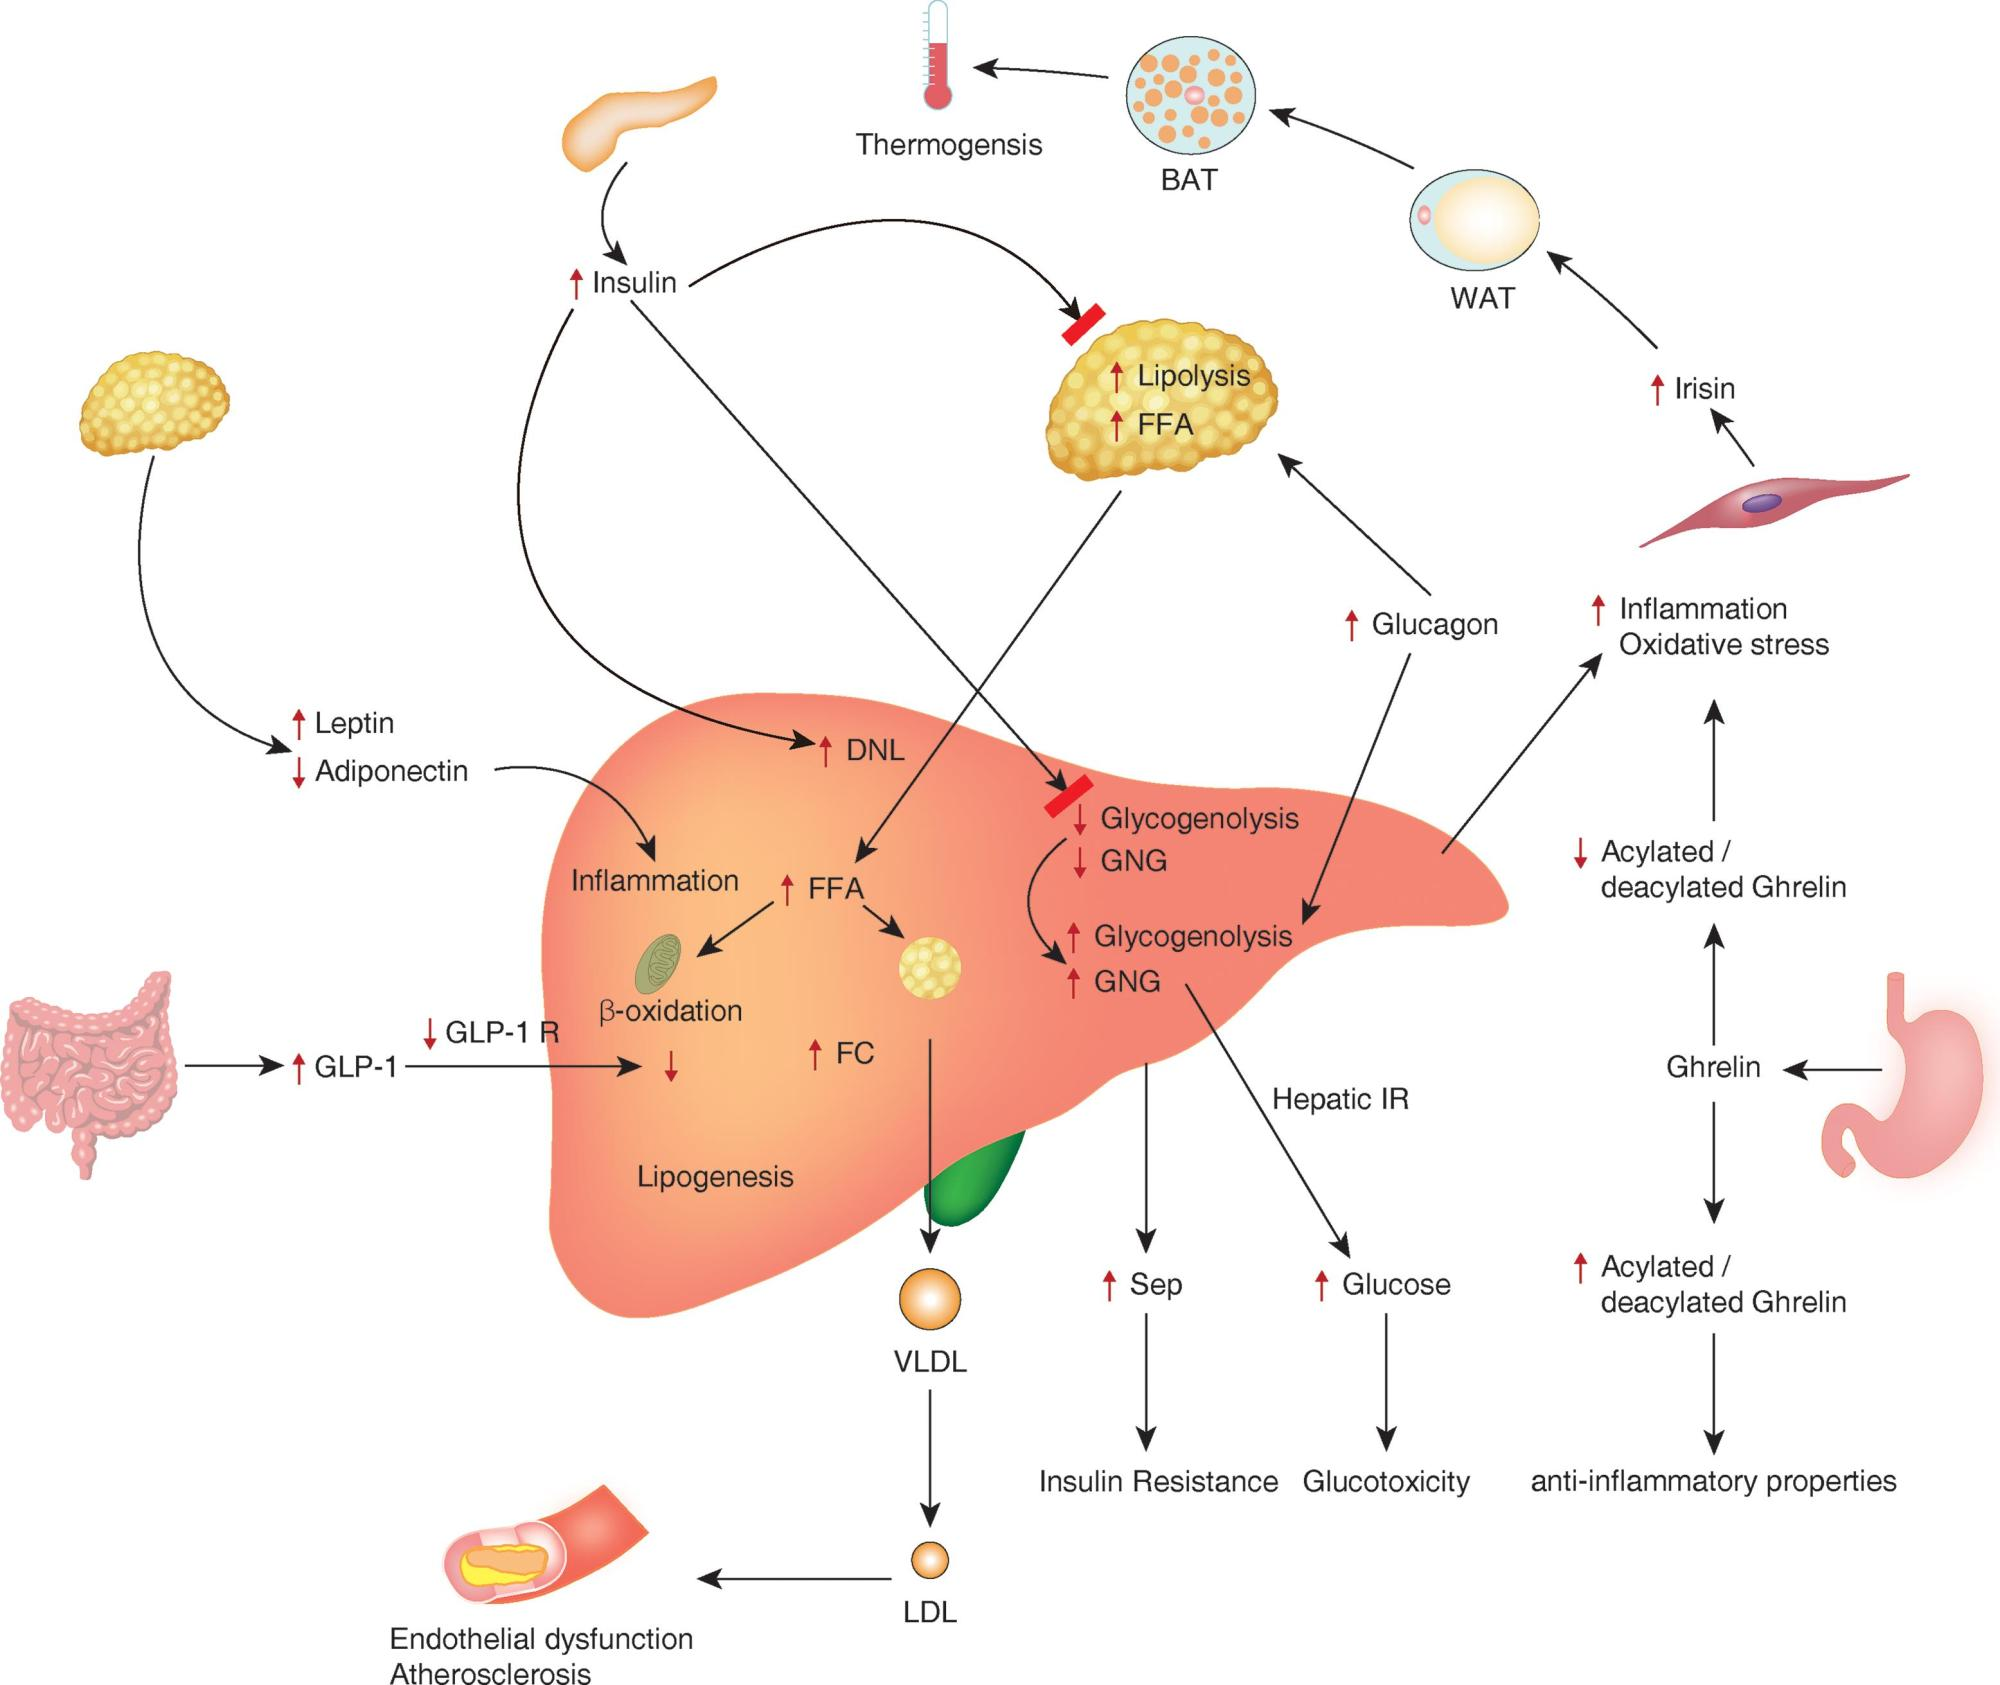 hight resolution of pathophysiological mechanisms involved in the development and complications of nonalcoholic fatty liver disease nafld